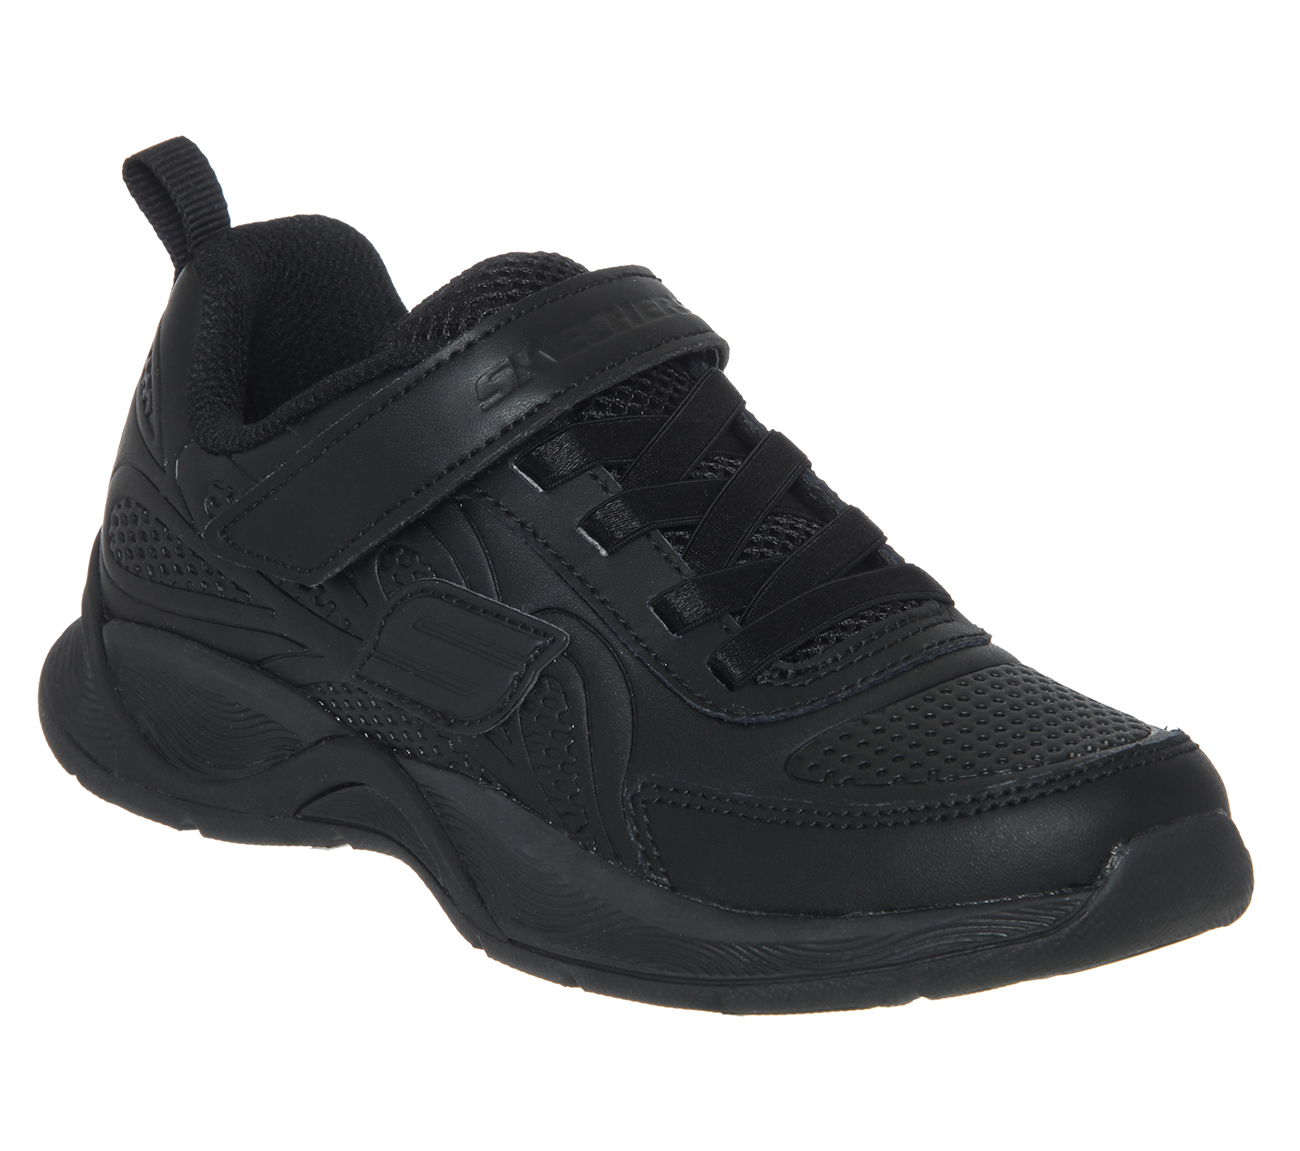 96831aff SKECHERS CHILE